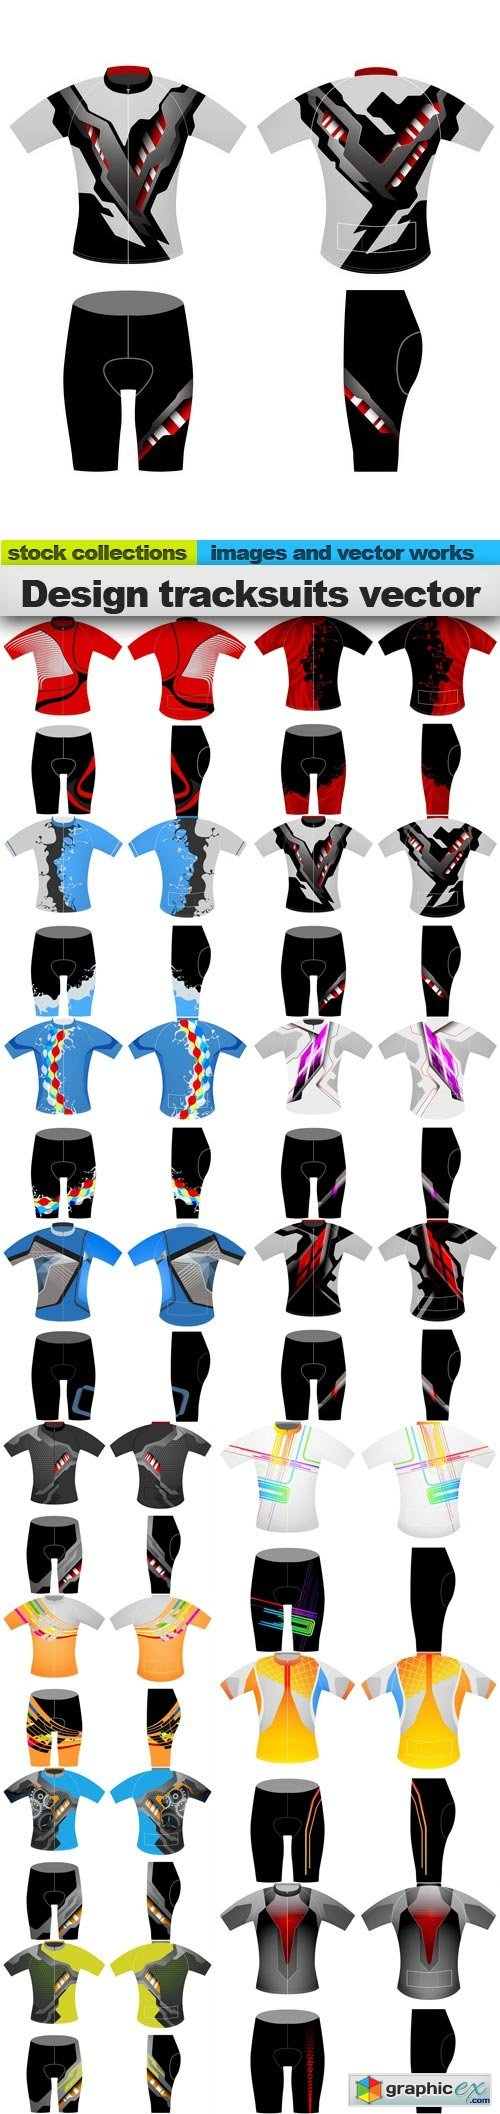 Design tracksuits vector, 15 x EPS